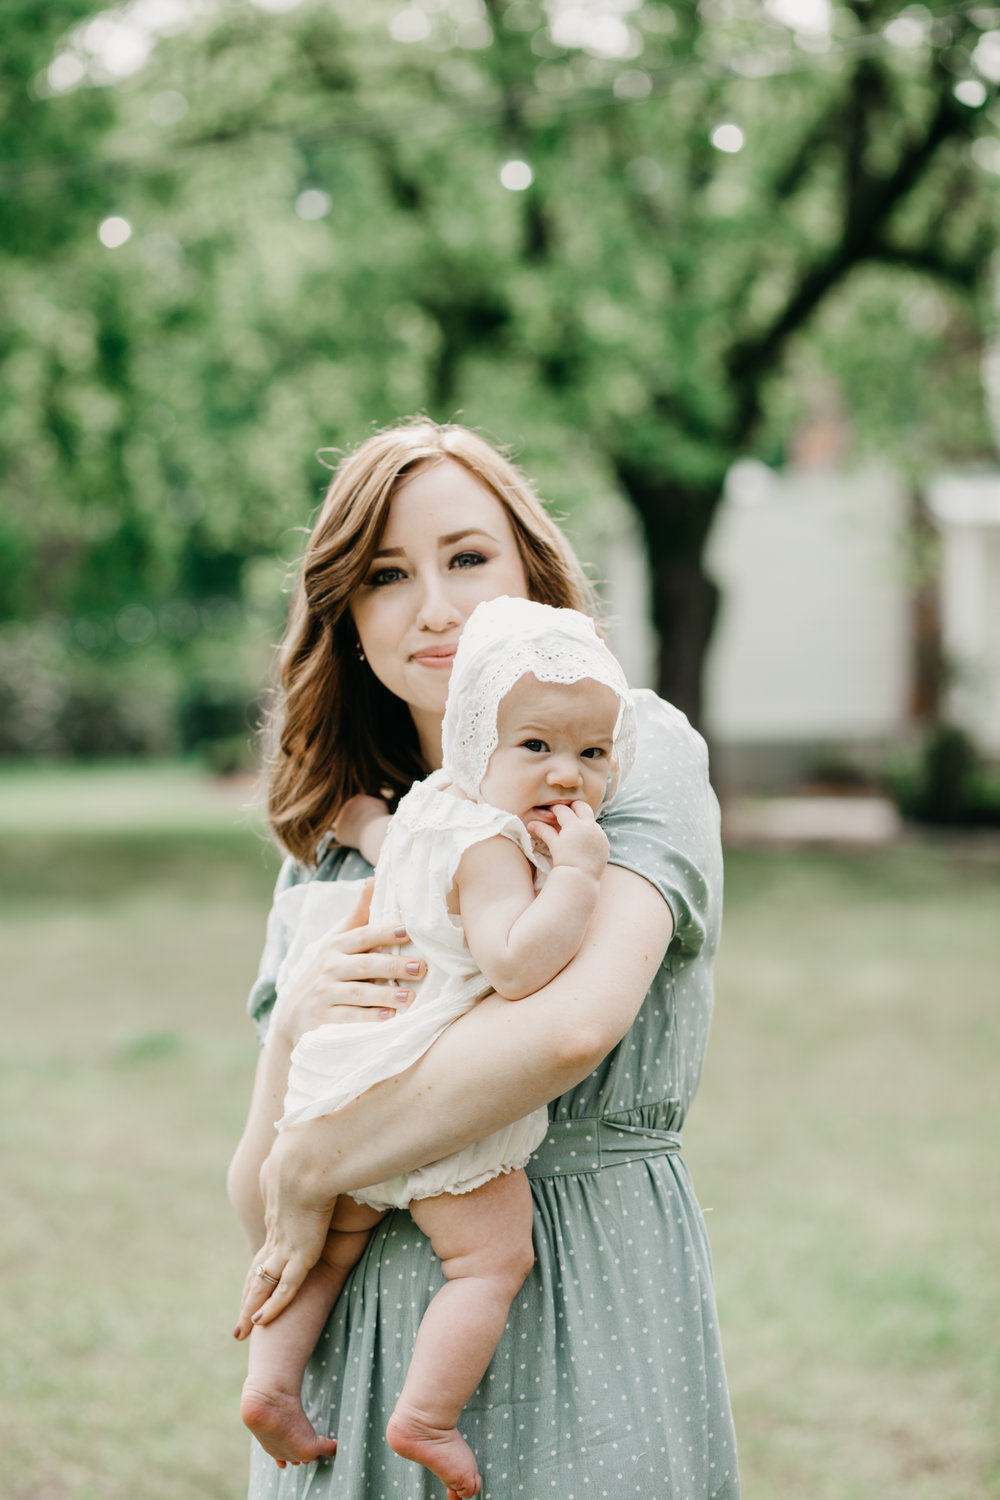 Brittany Martorella Photography | Columbus & Fort Benning Georgia